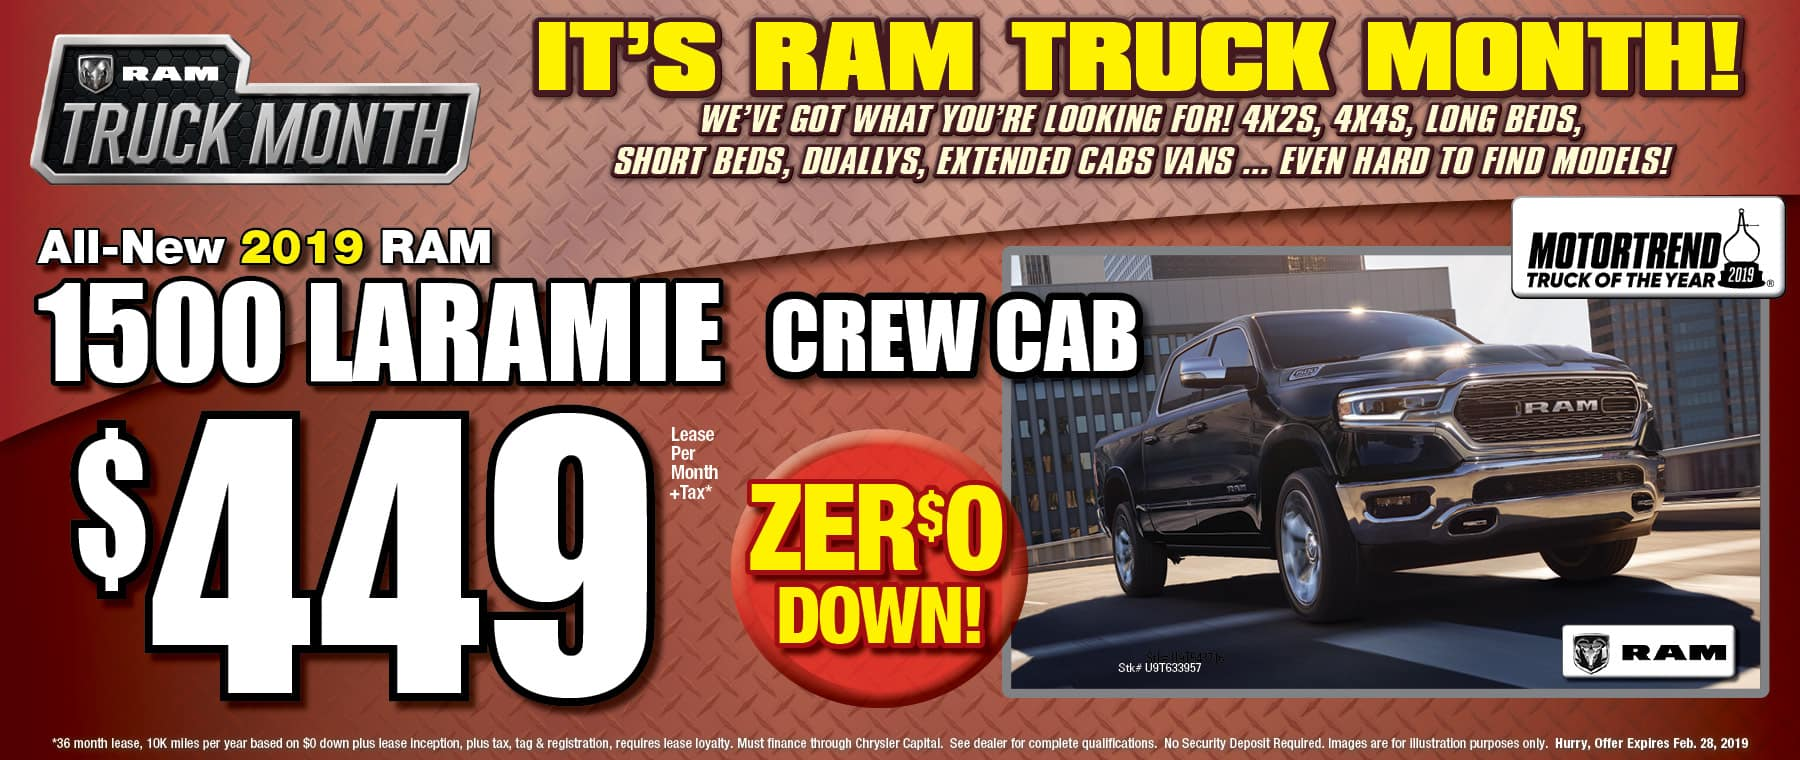 All New 2019 Ram Laramie! - University Dodge RAM!